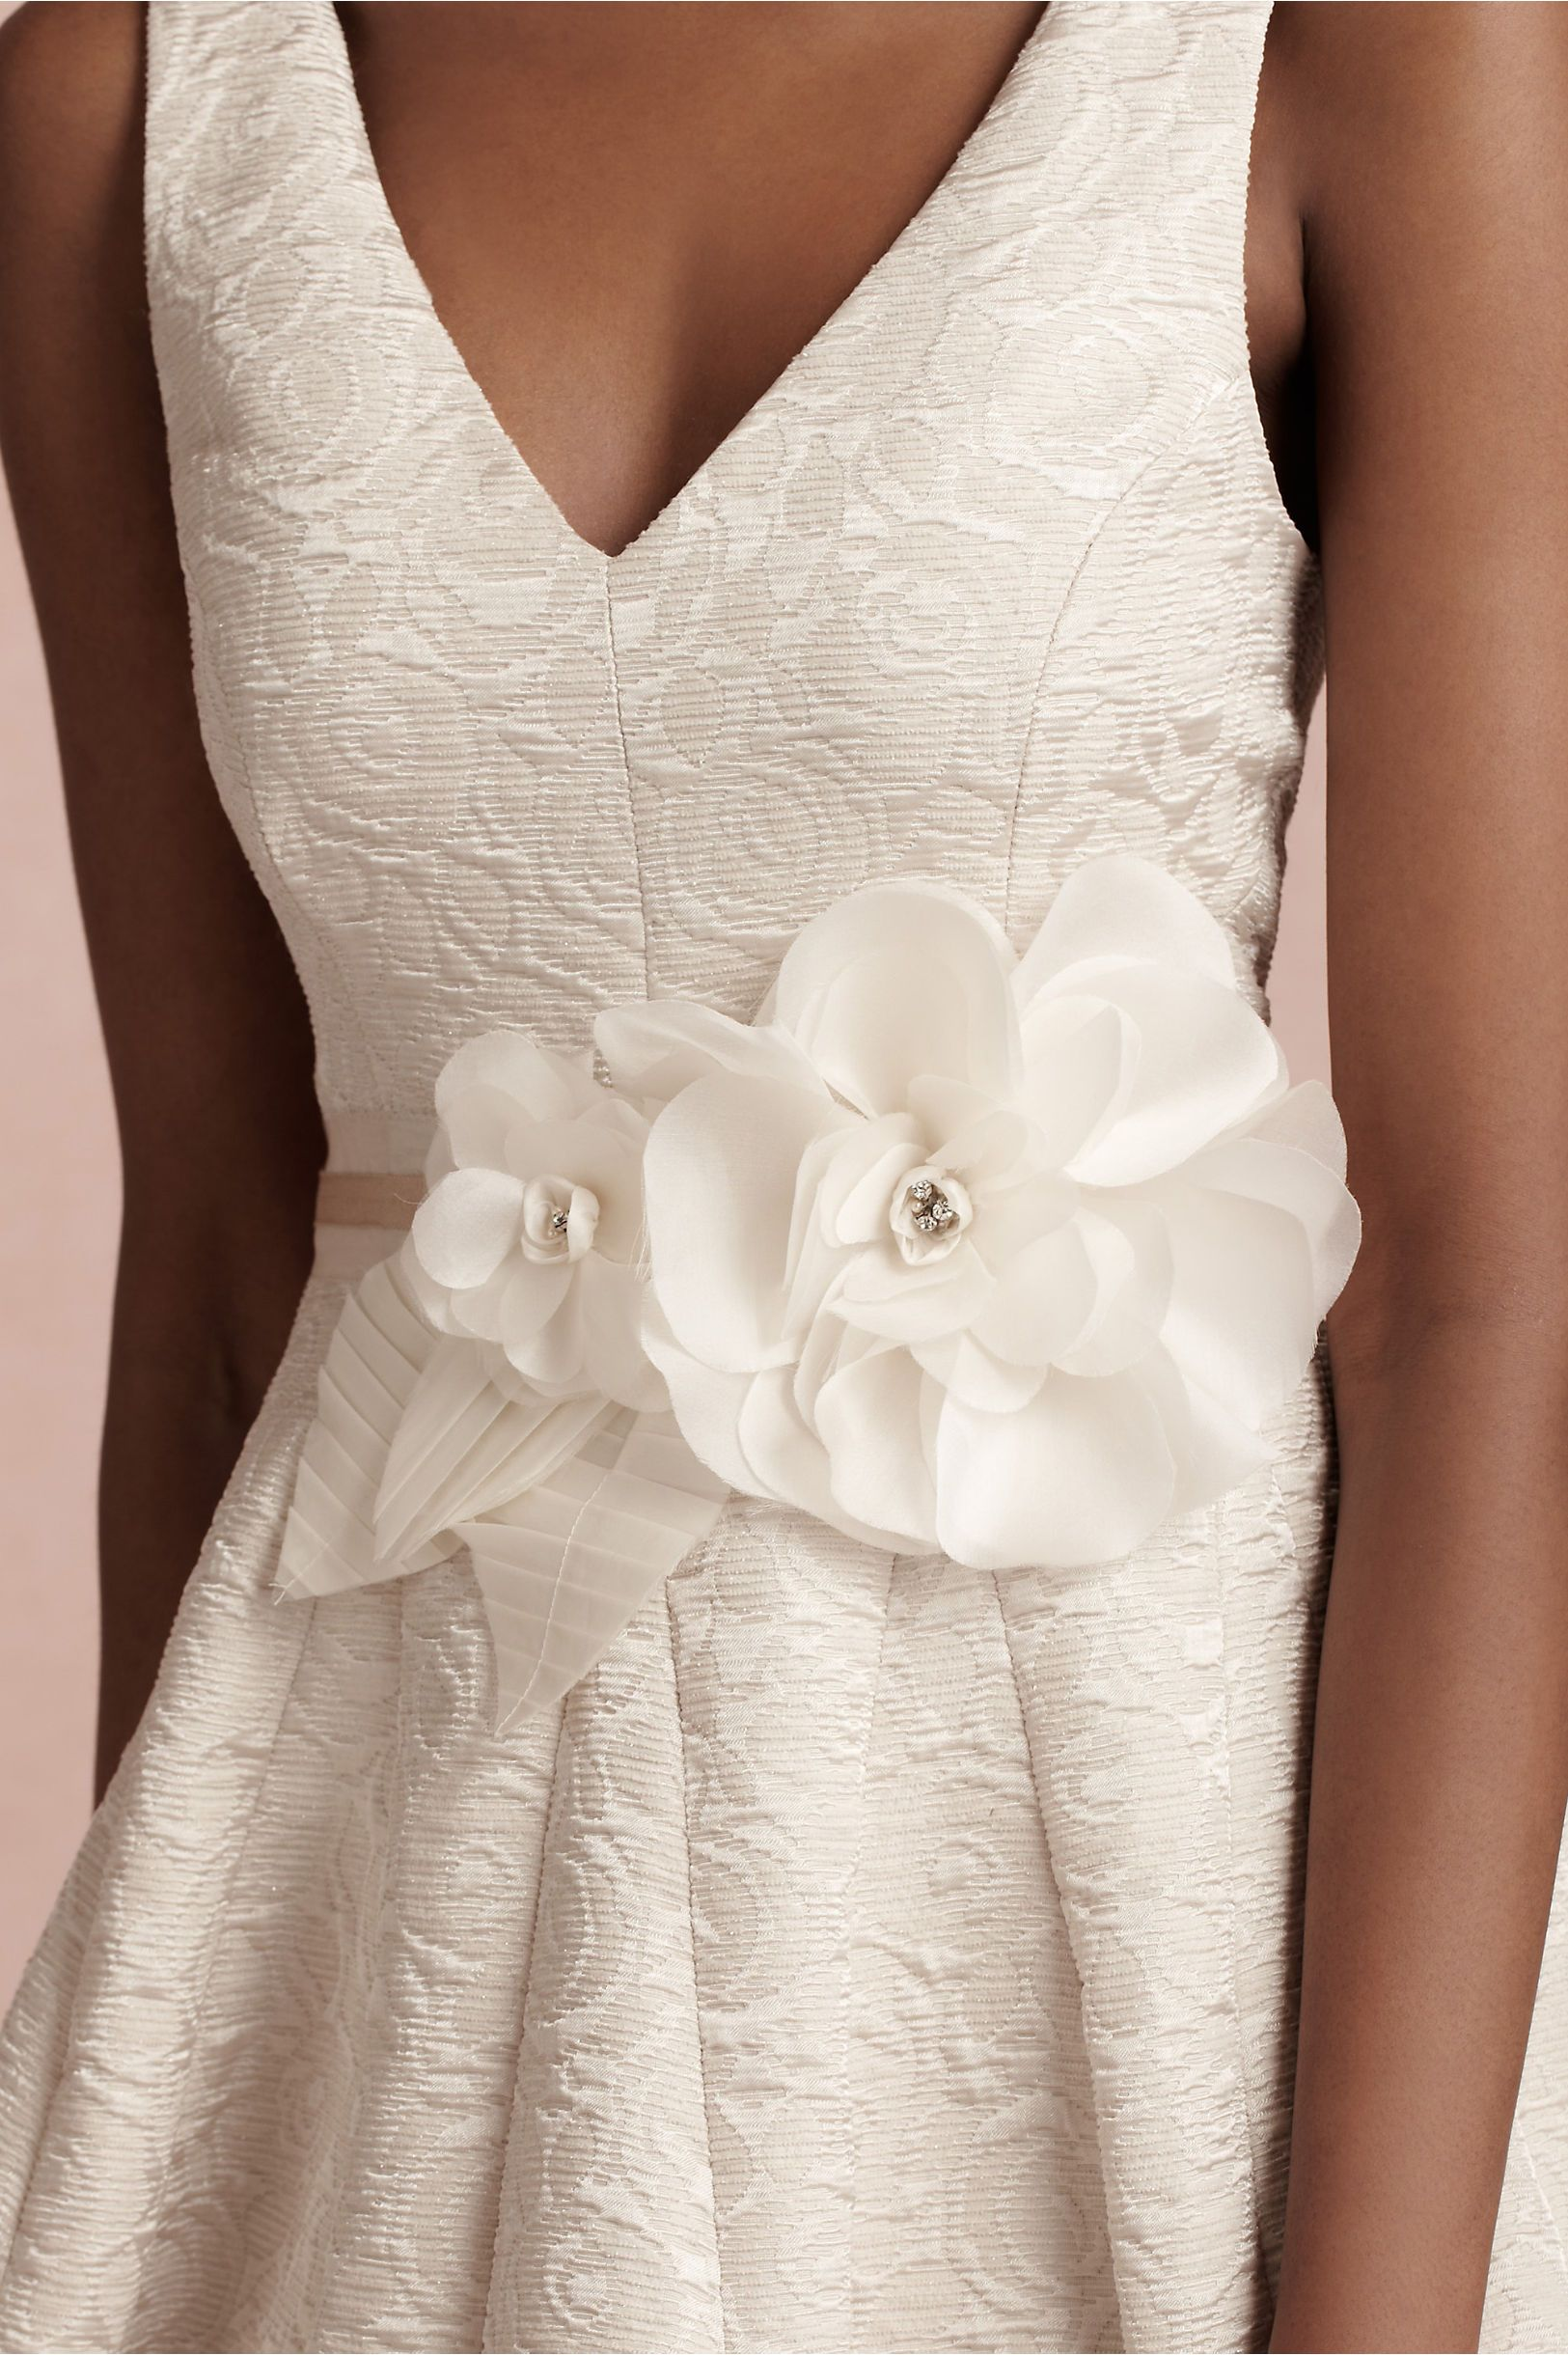 Horticultural Society Sash in SHOP Shoes & Accessories Belts at BHLDN